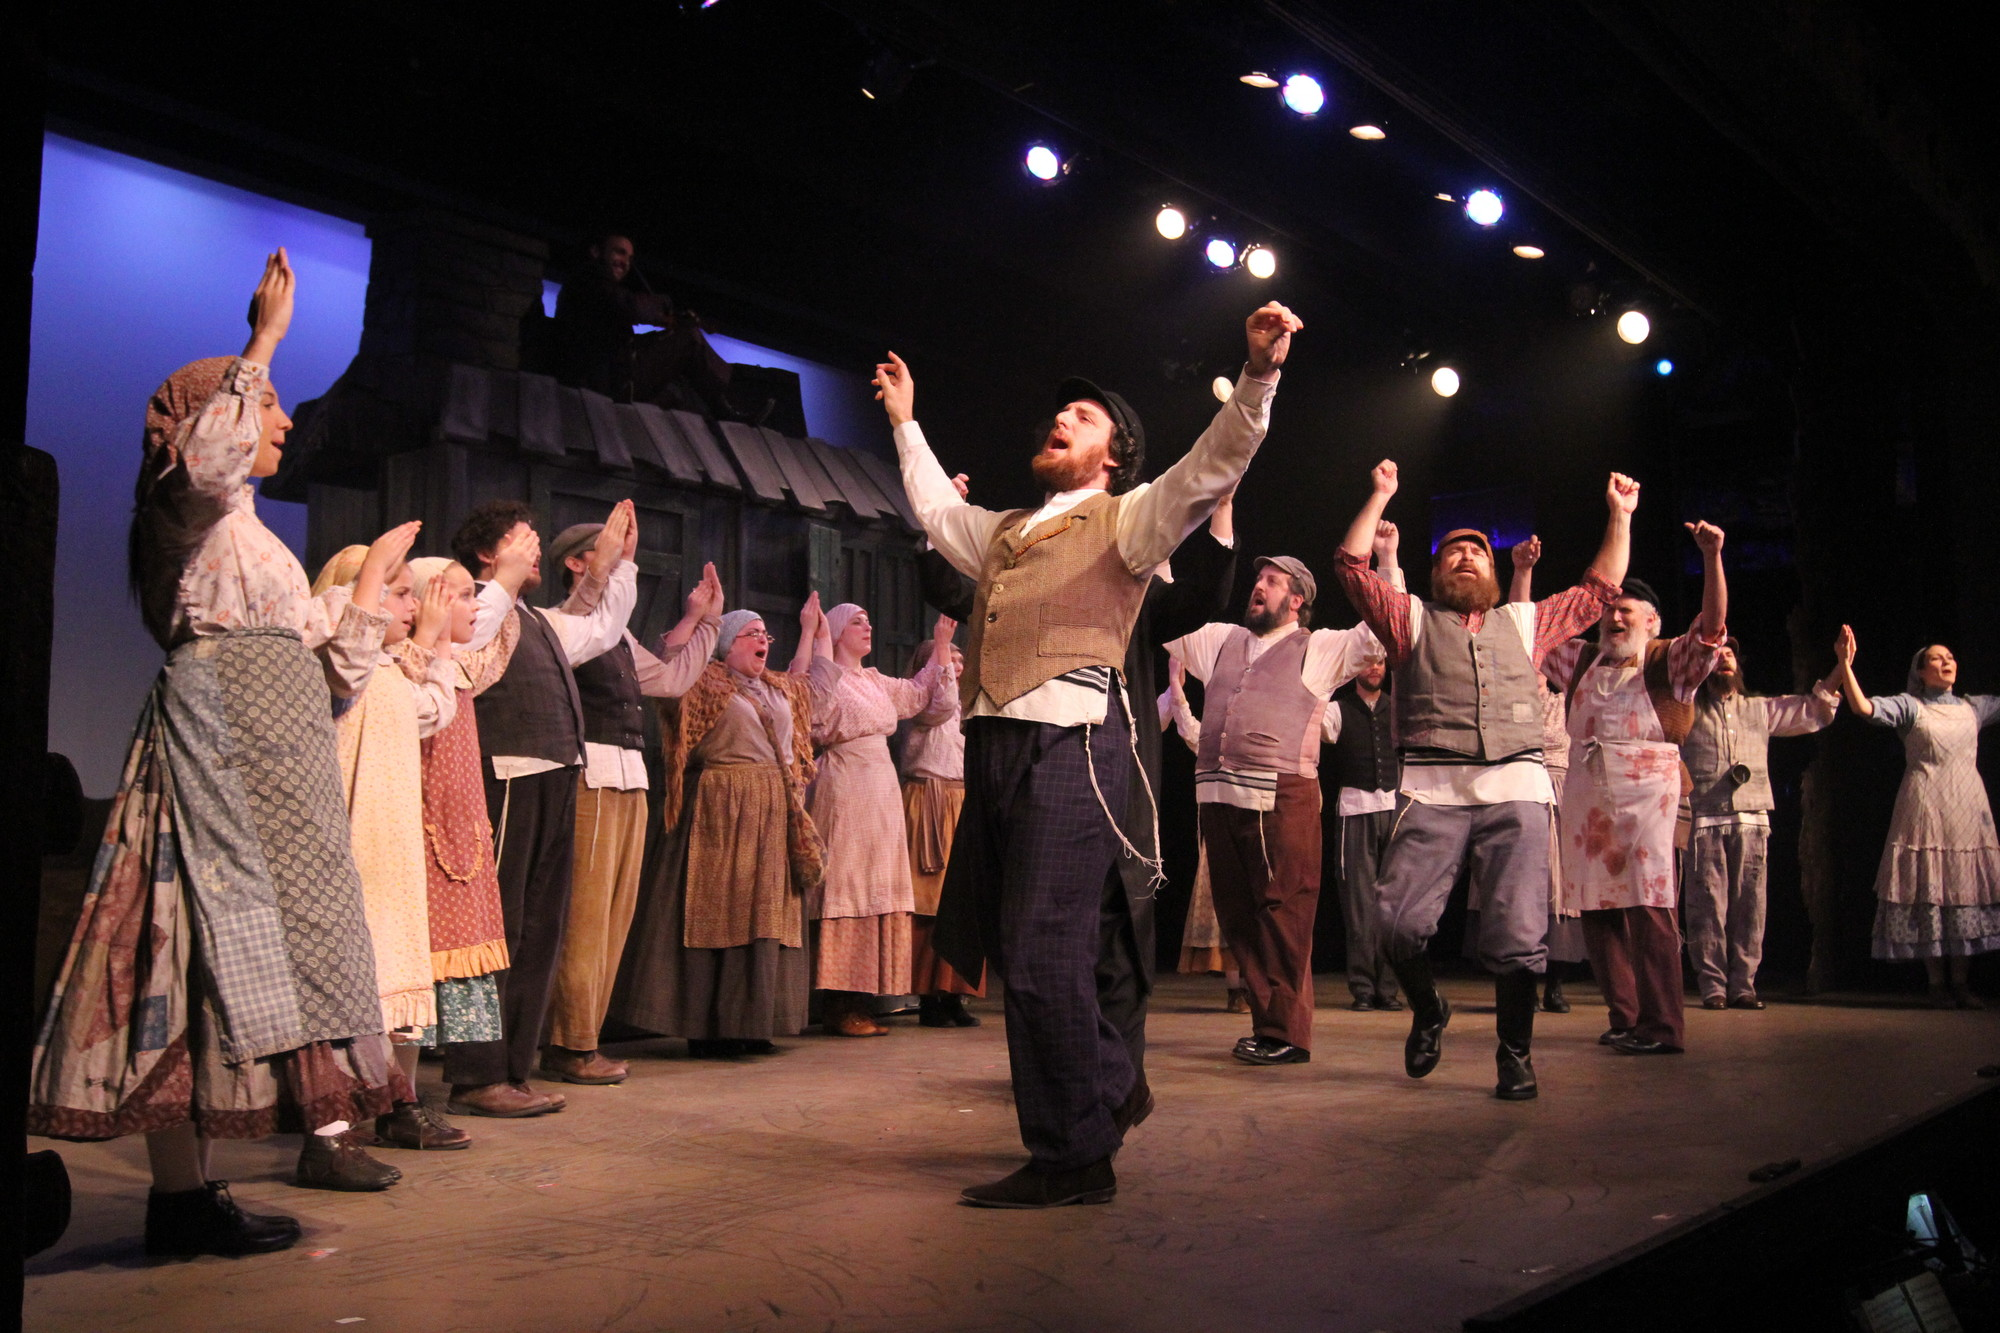 The villagers of Anatevka share their hopes, dreams and changing traditions with audiences when the touring production of �Fiddler on the Roof� comes to Rockville Centre.